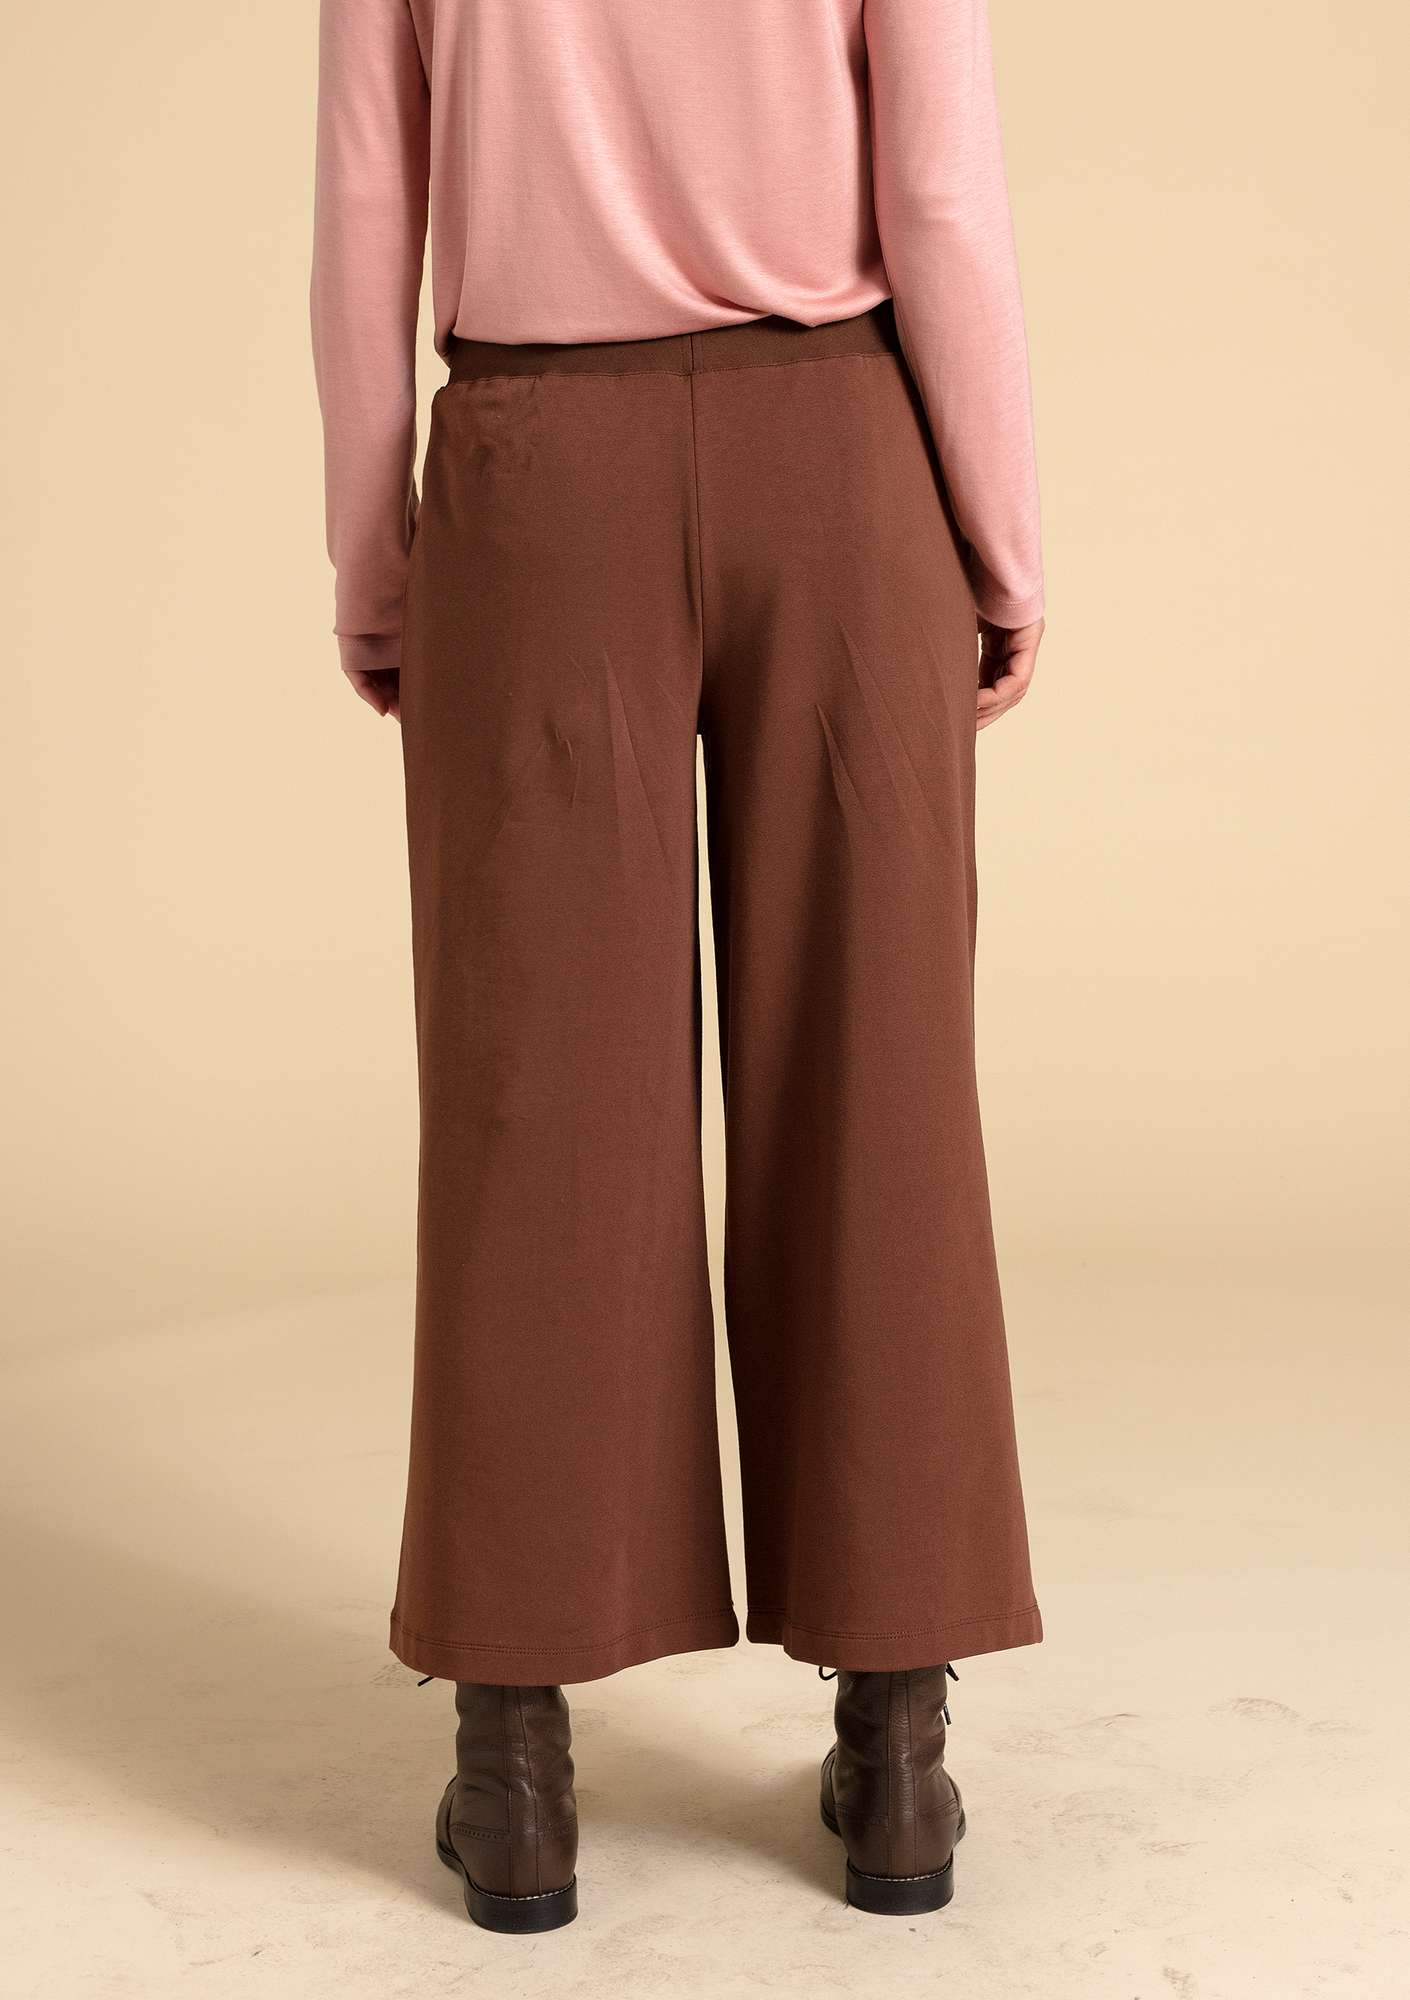 Pants in eco-cotton/modal/spandex chestnut